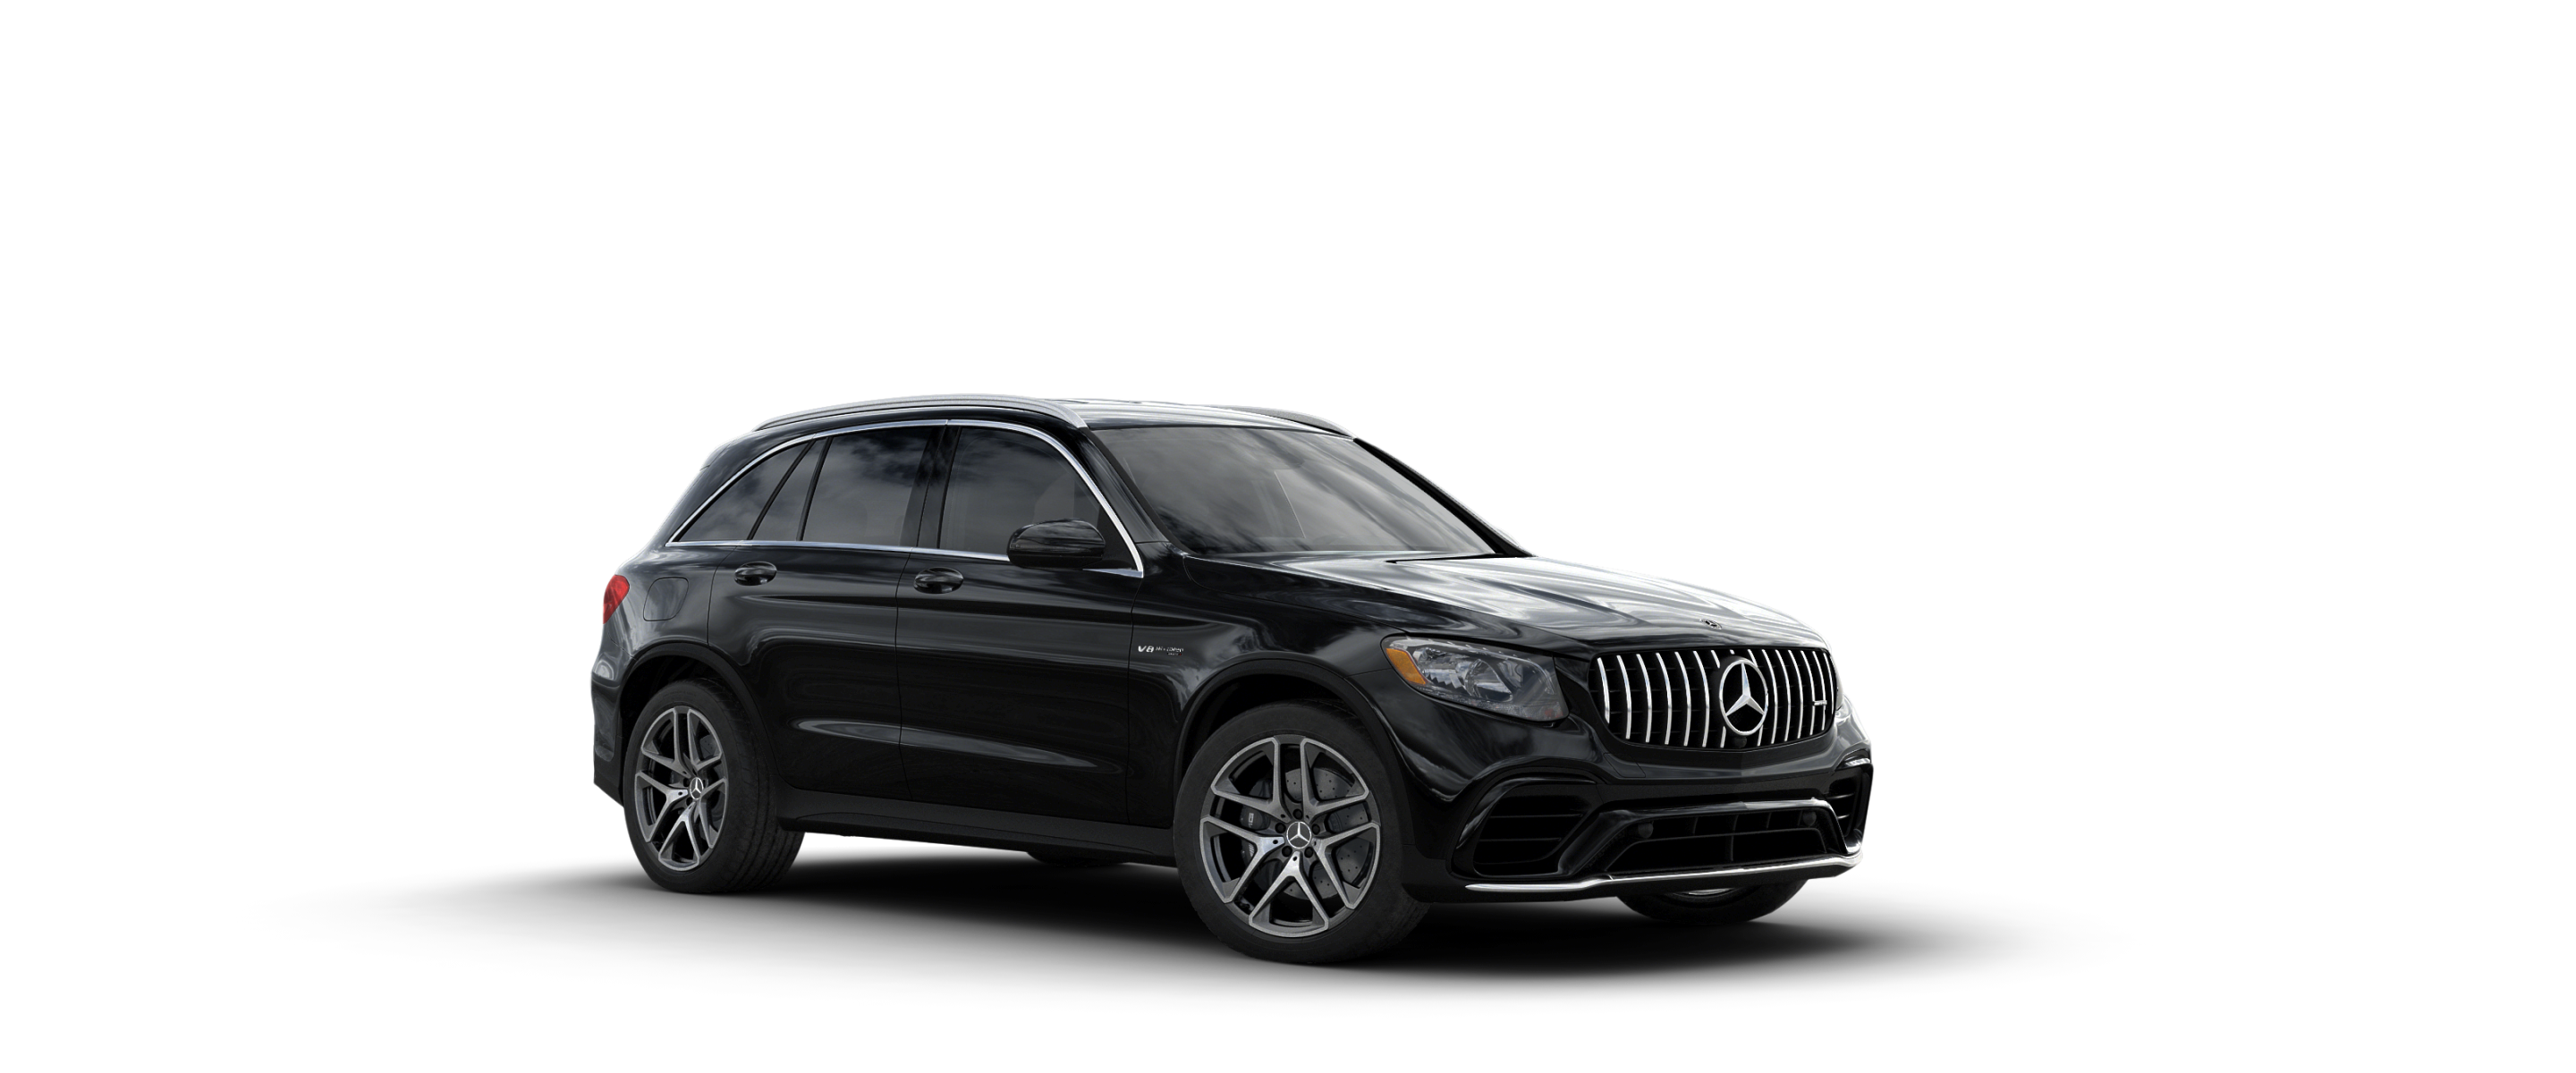 2019 Mercedes-Benz GLC 2019 Mercedes-Benz AMG® GLC 63 SUV